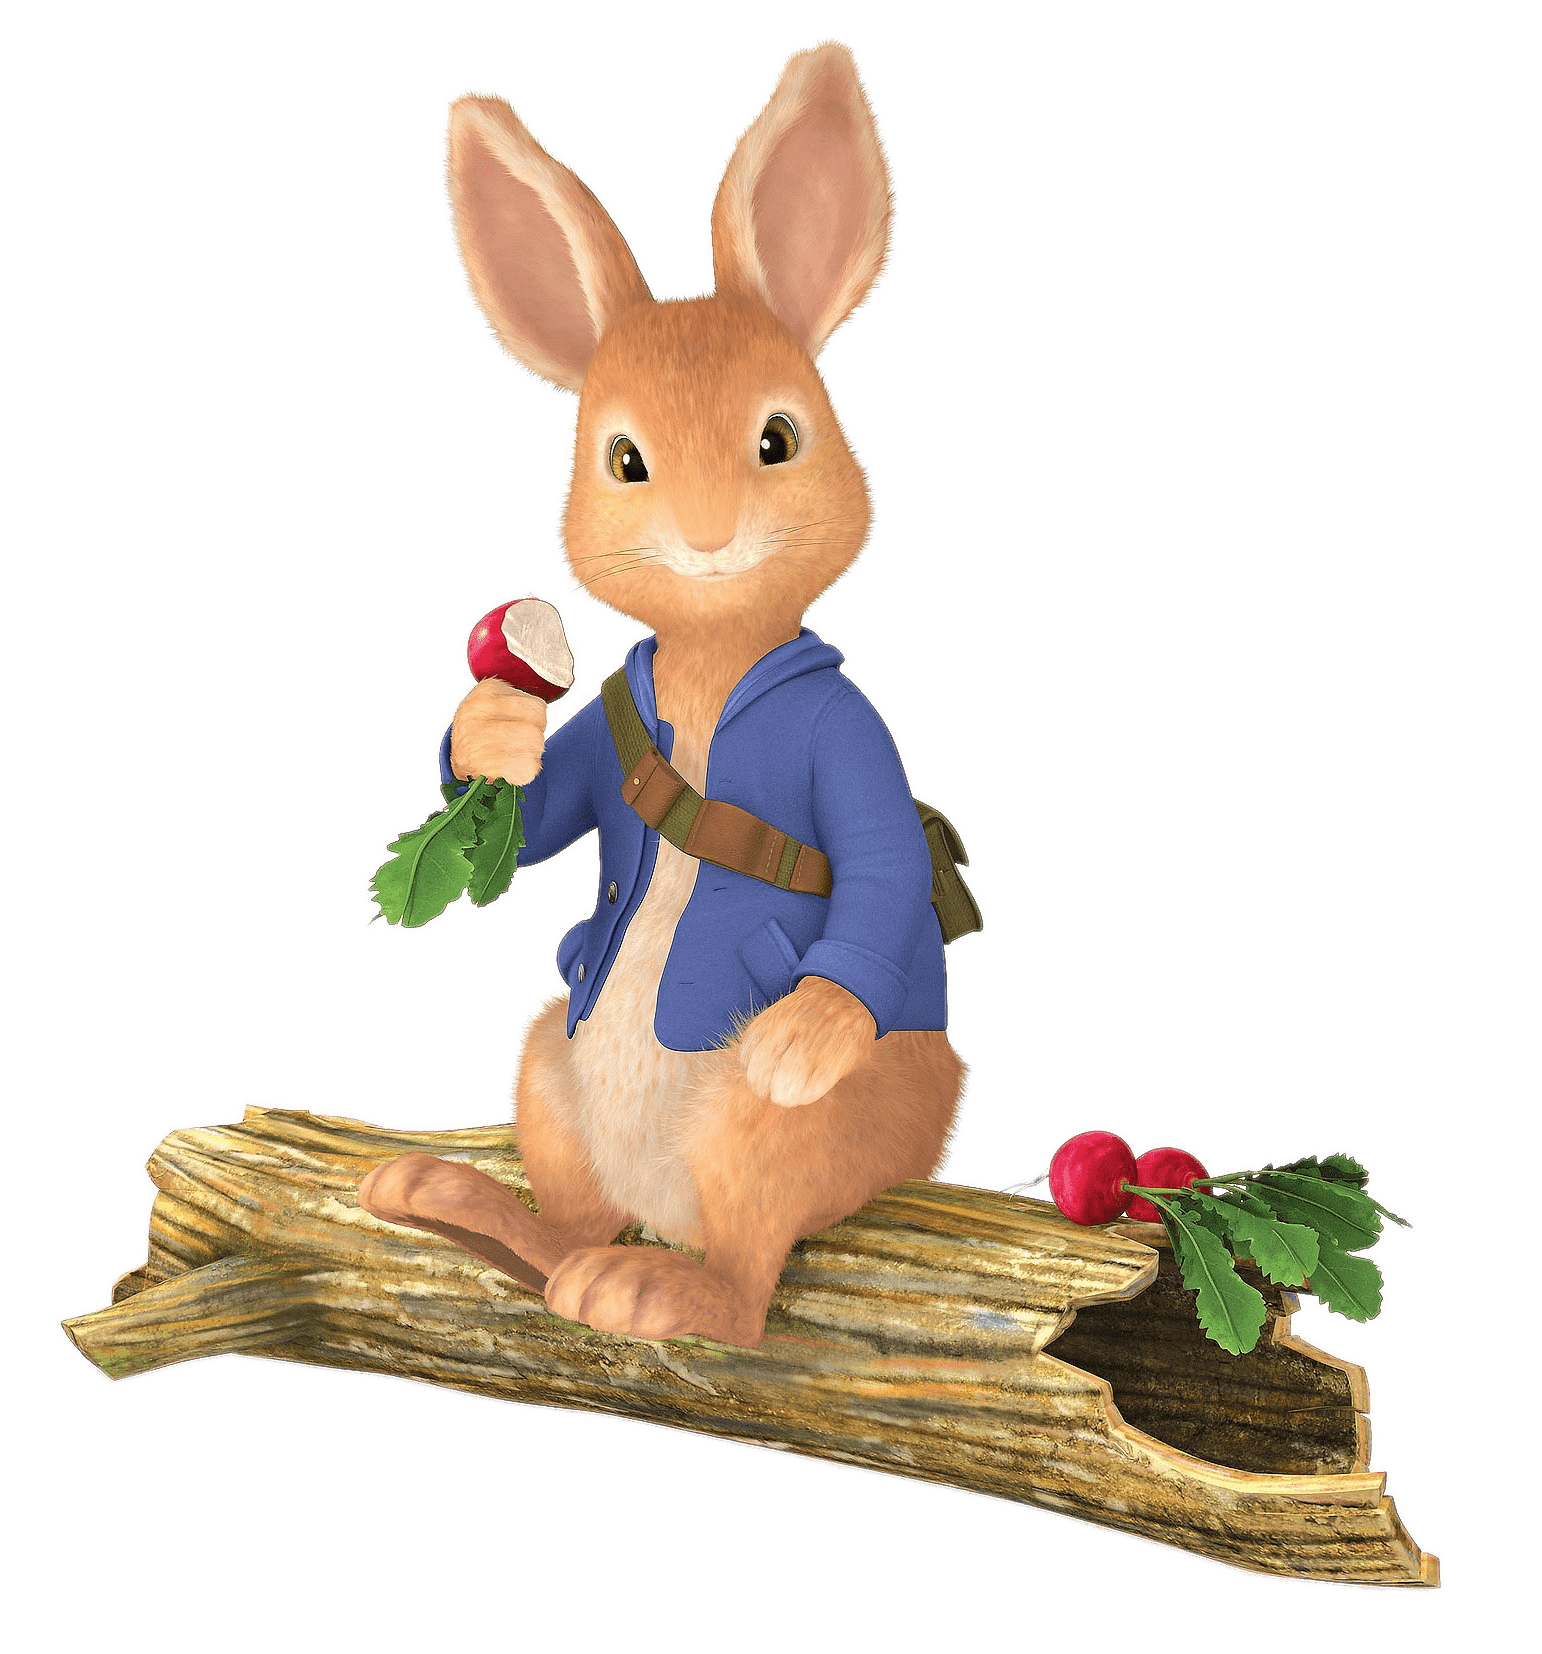 Peter rabbit png. Sitting on tree trunk